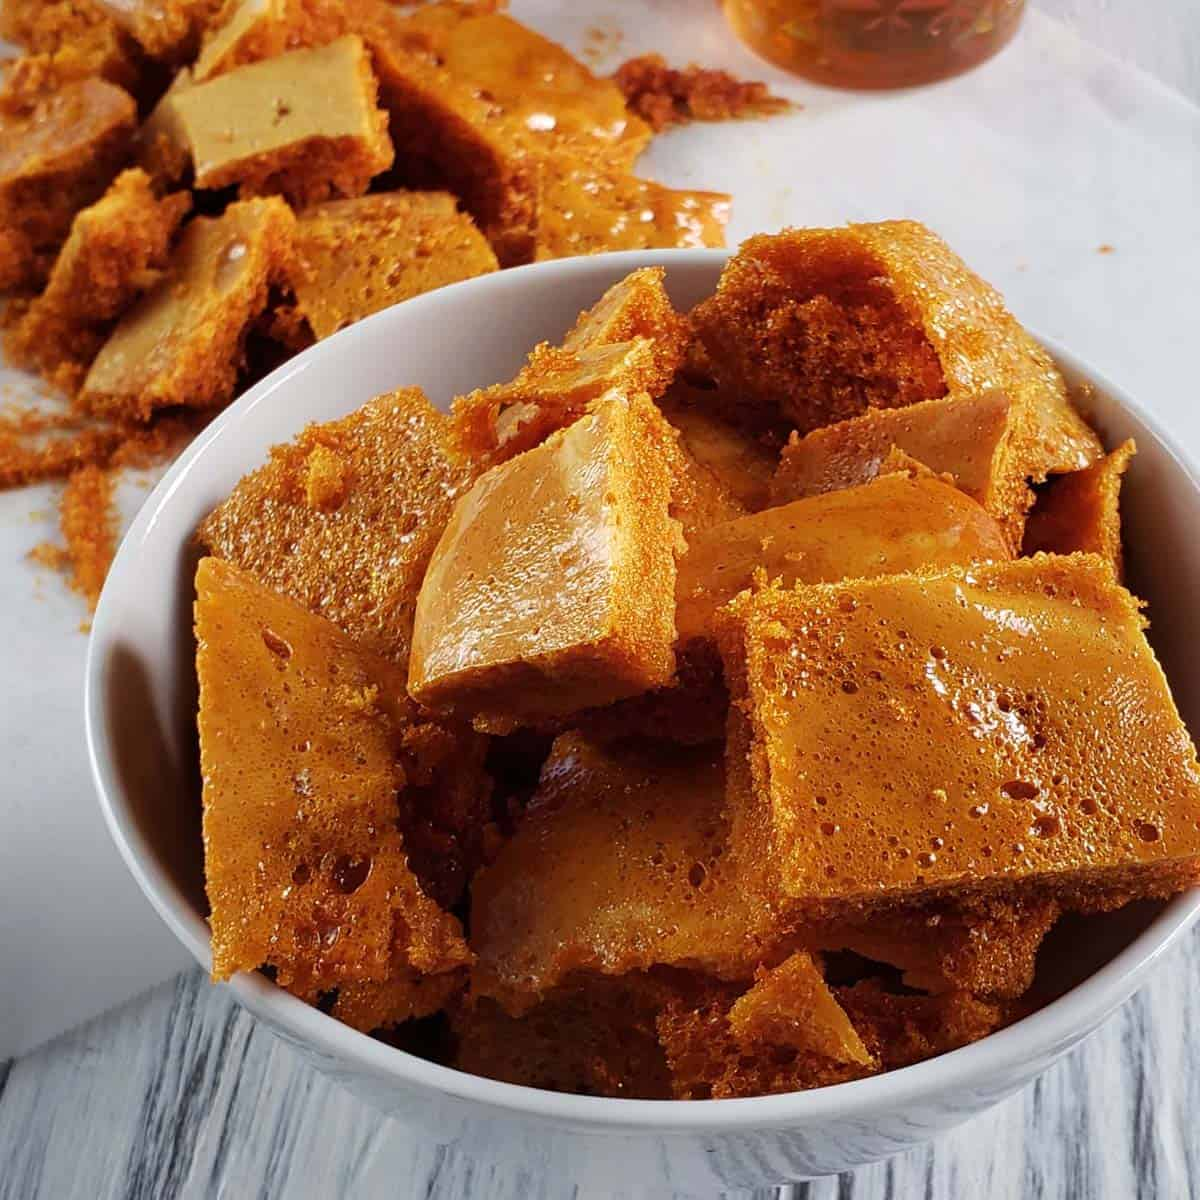 honeycomb candy piled in a white bowl